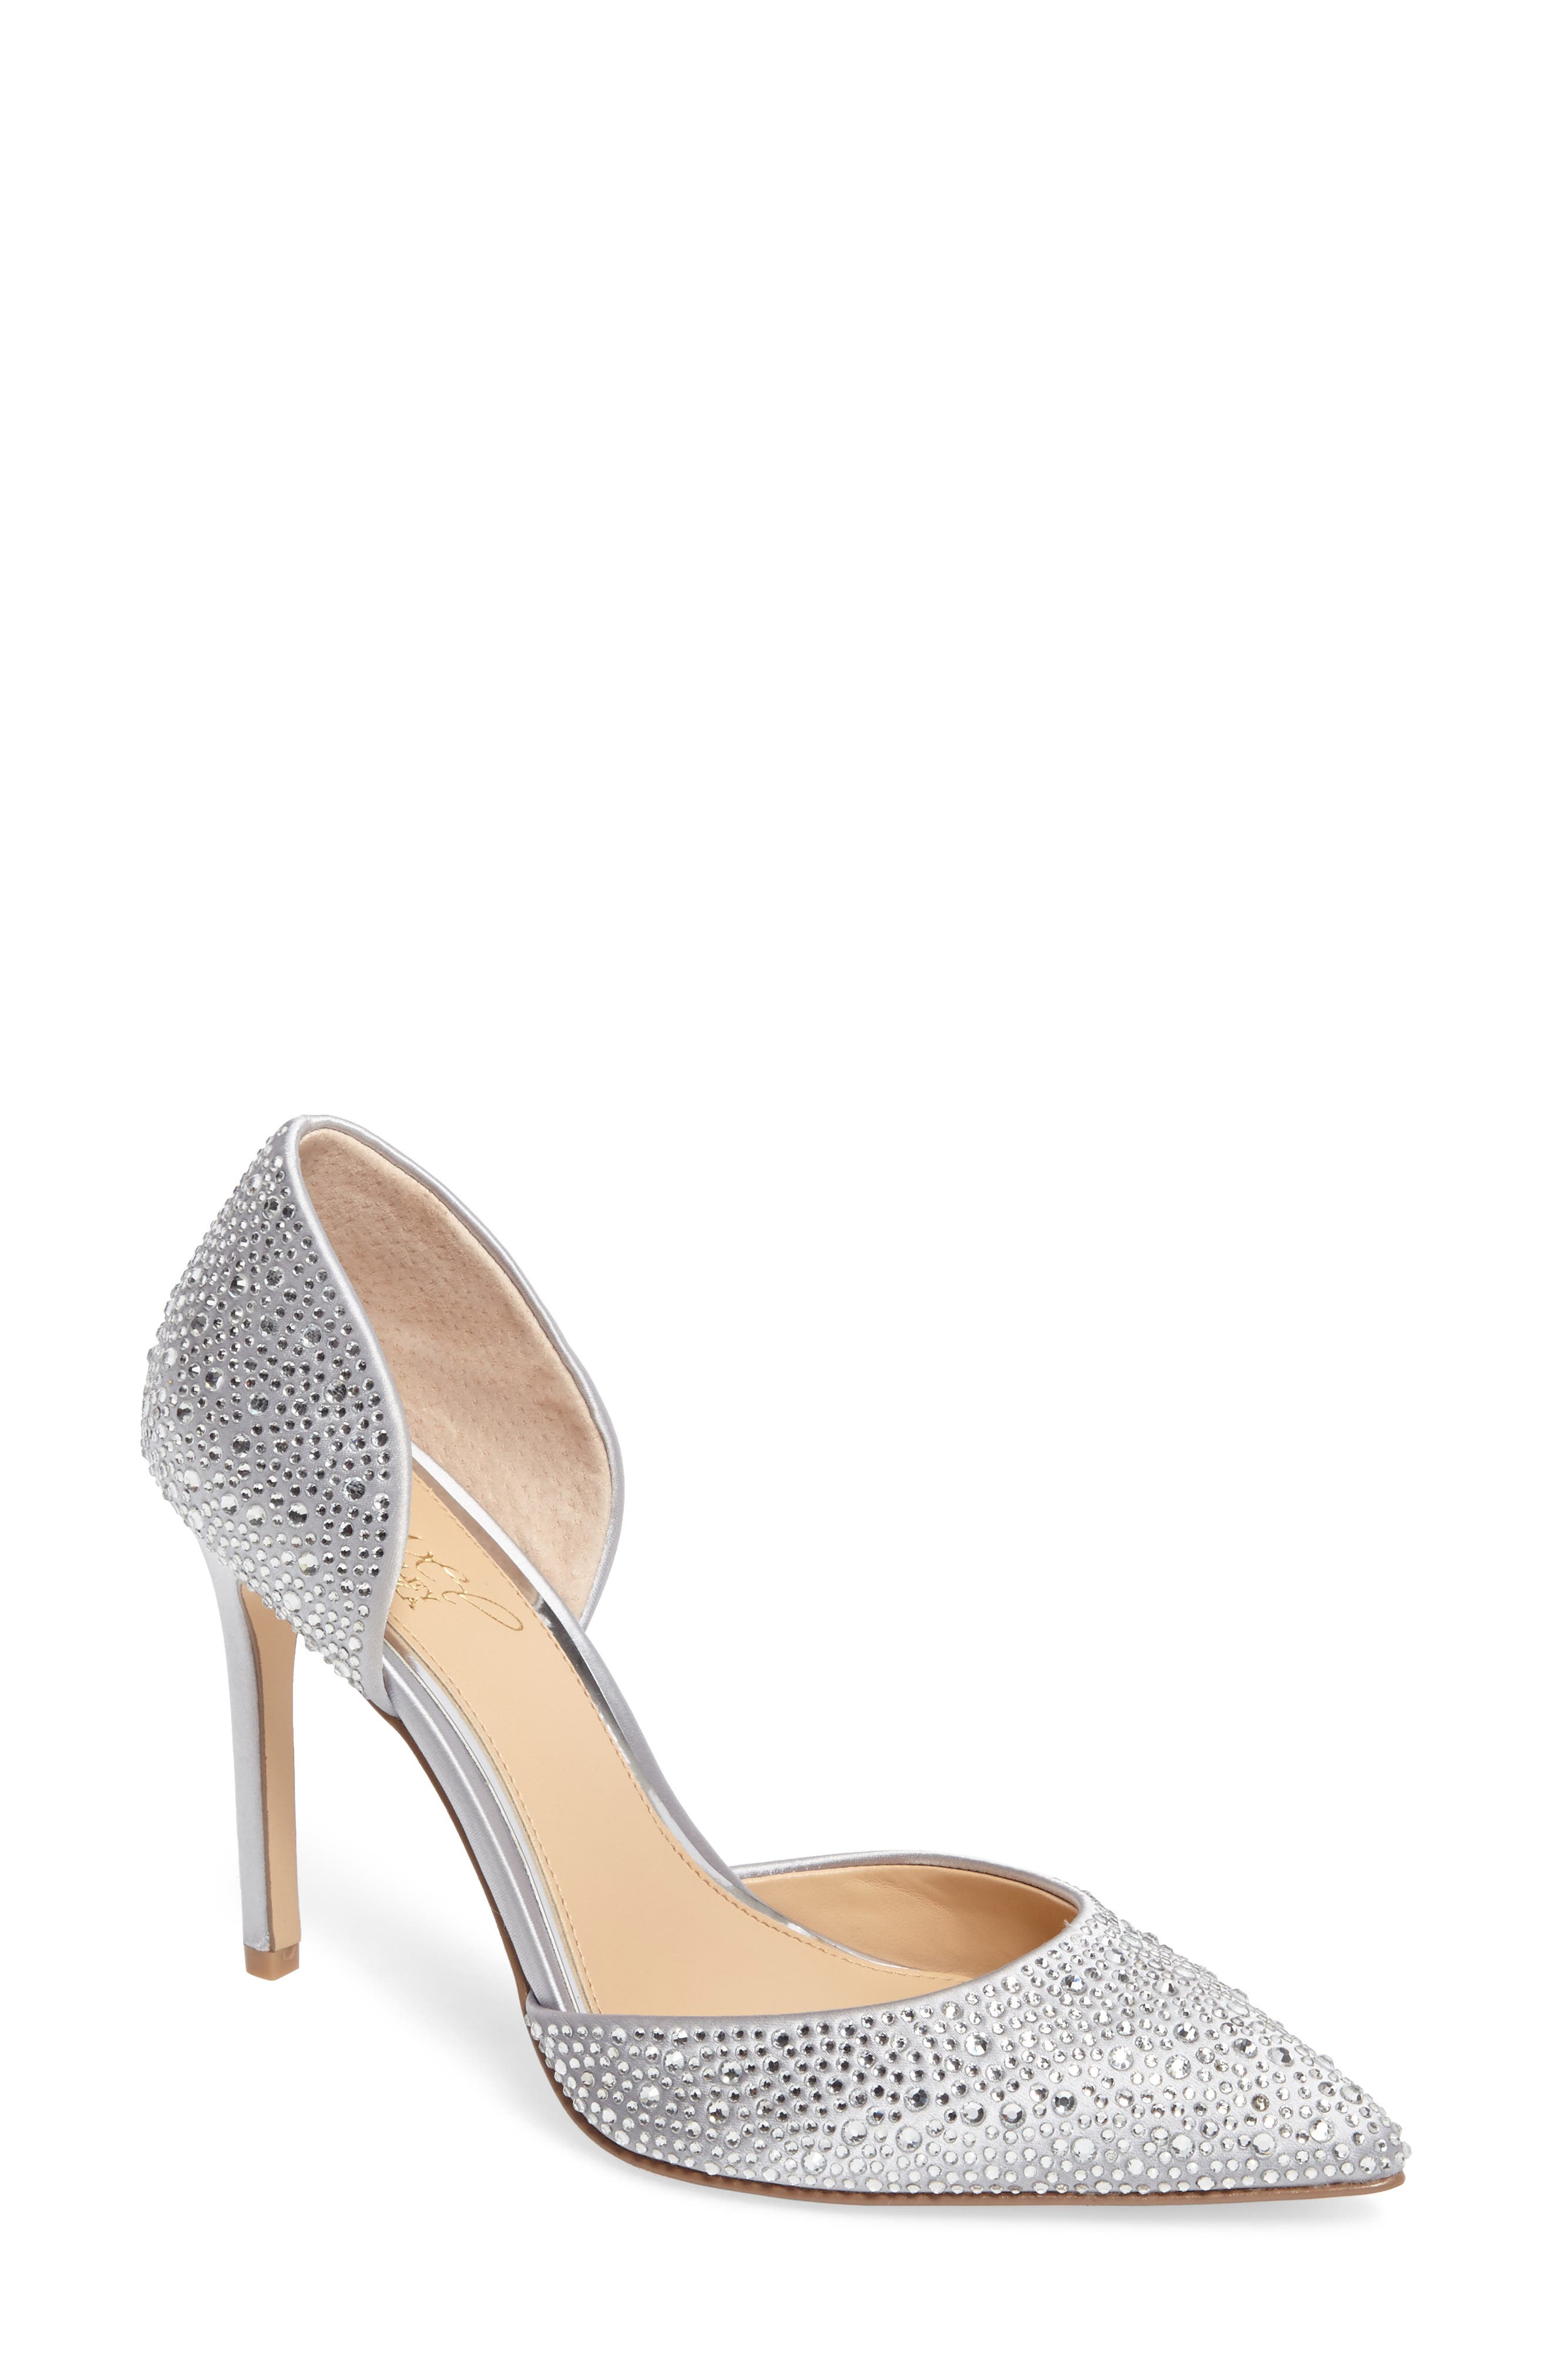 Jewel Badgley Mischka Alexandra d'Orsay Pump (Women)